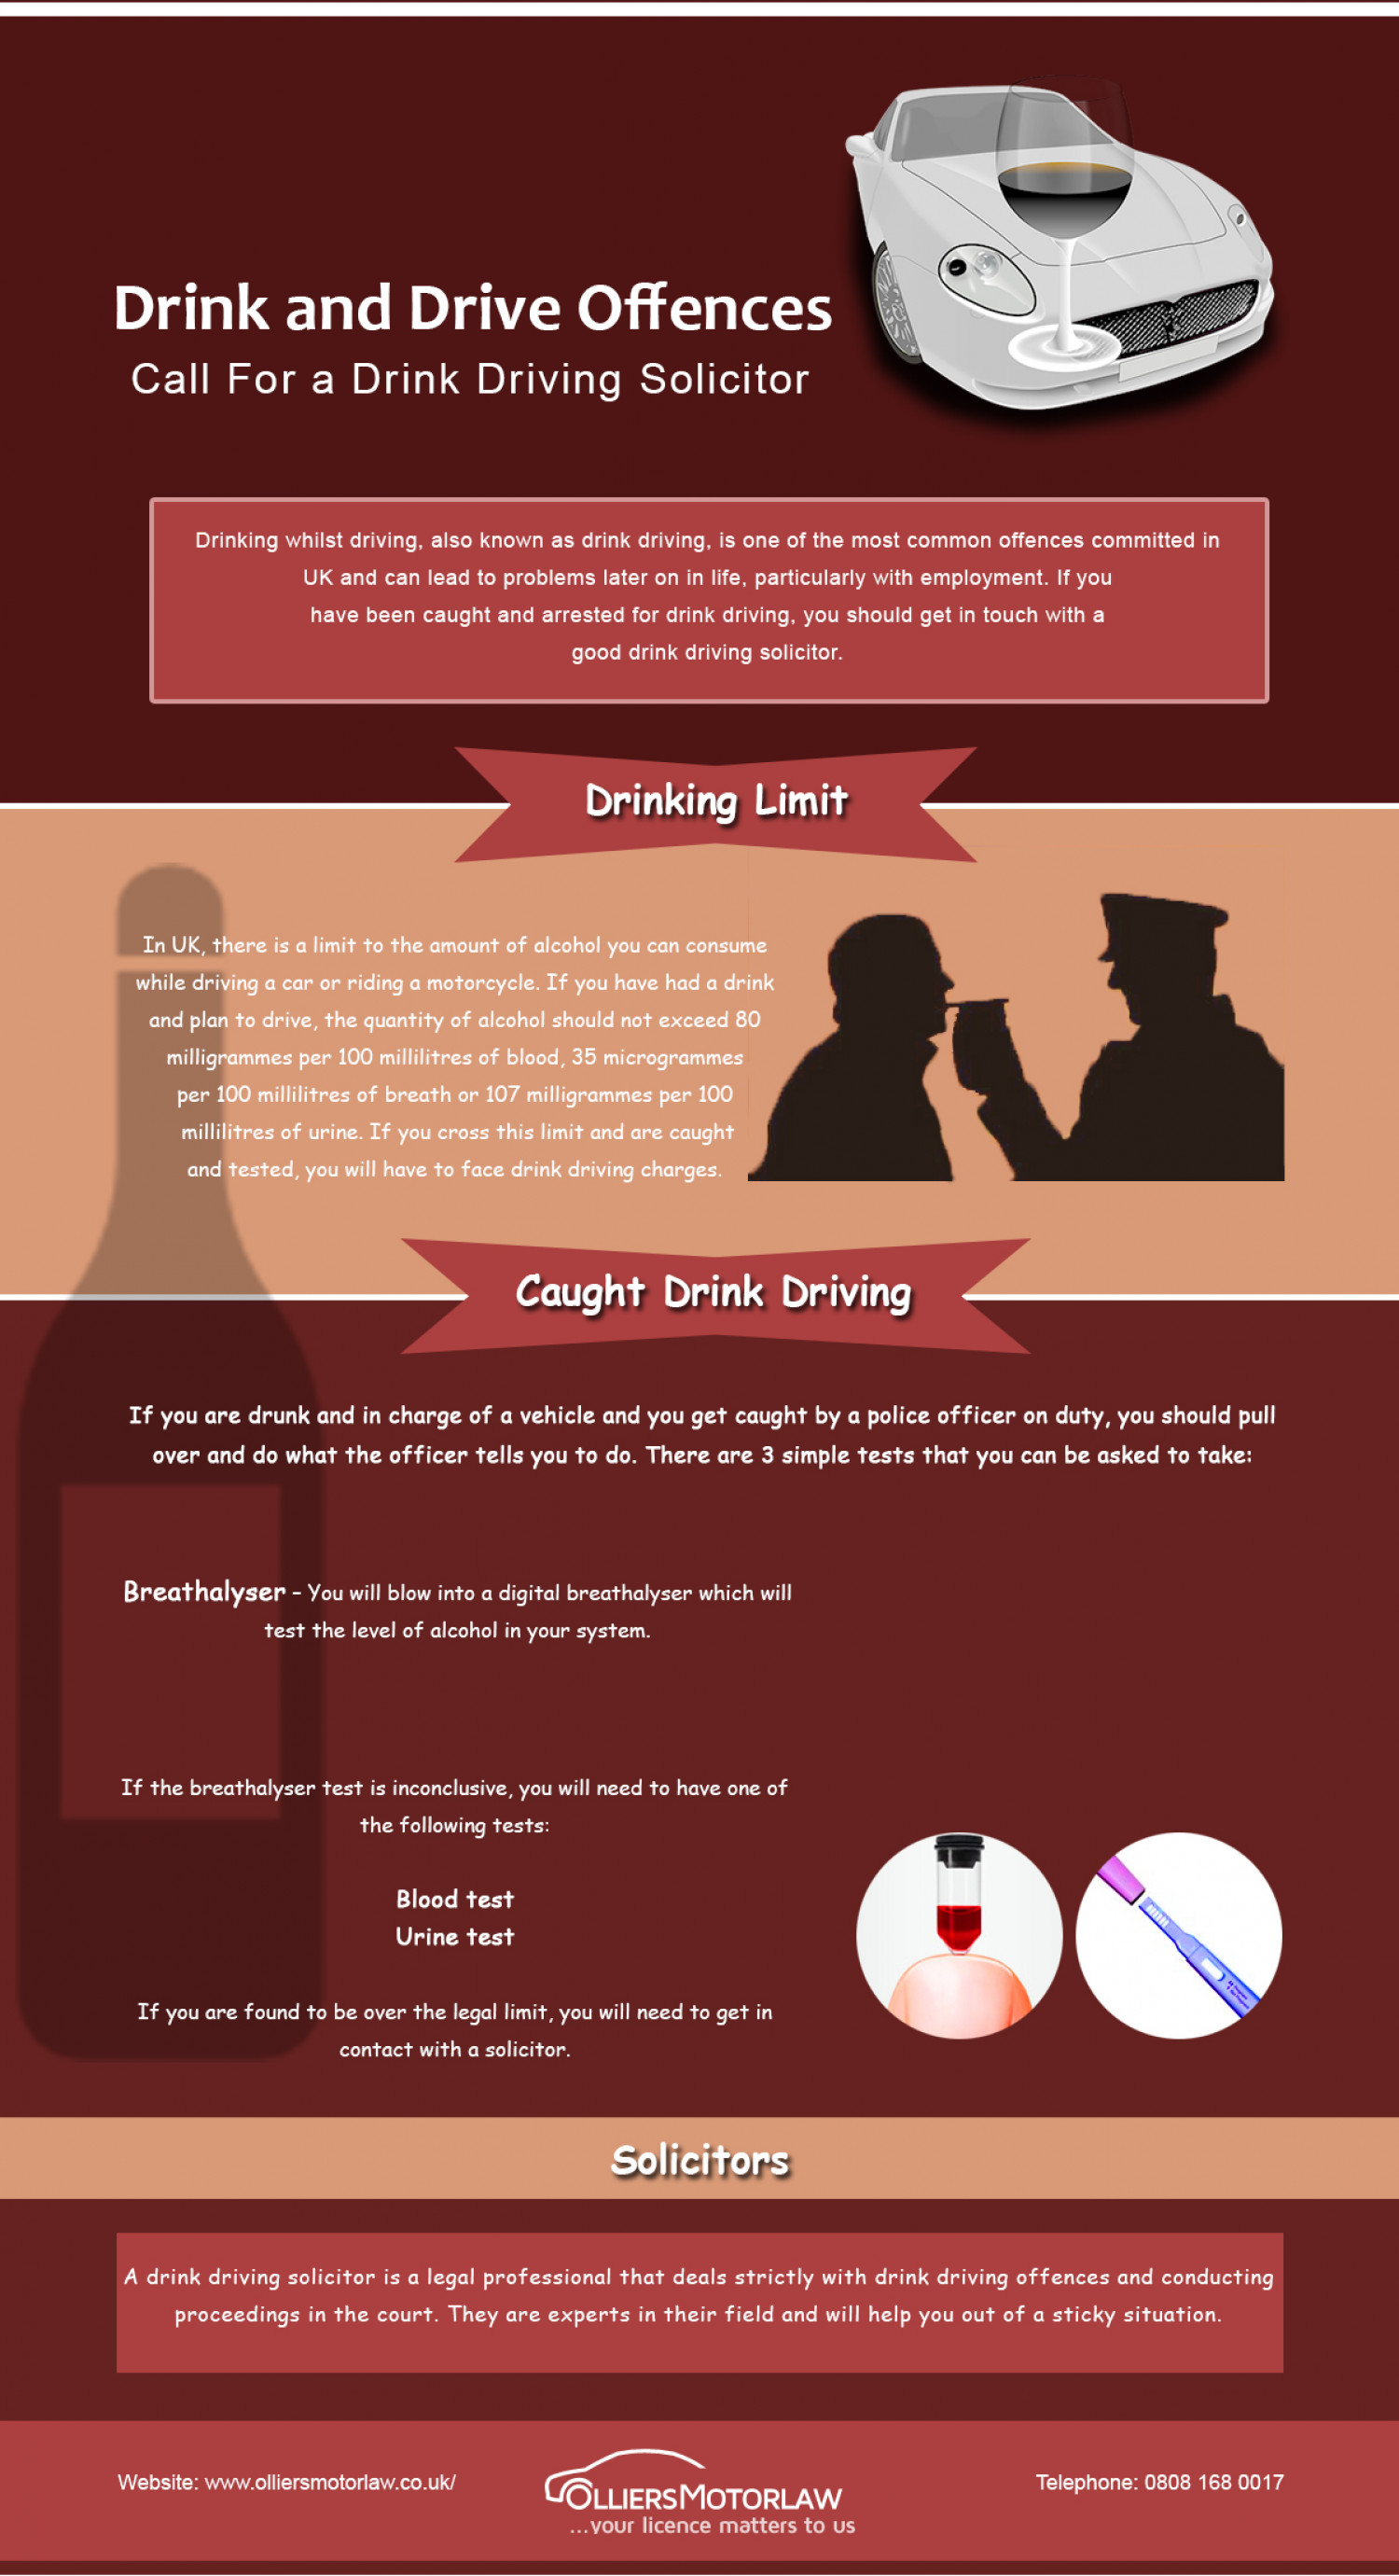 """an essay on drinking and driving offences Drunk driving my essay is on """"drinking and driving offences"""" in my essay i will tell you the various kinds of drinking and driving offences, the penalties, and the defences you can make if you are caught drinking and driving."""